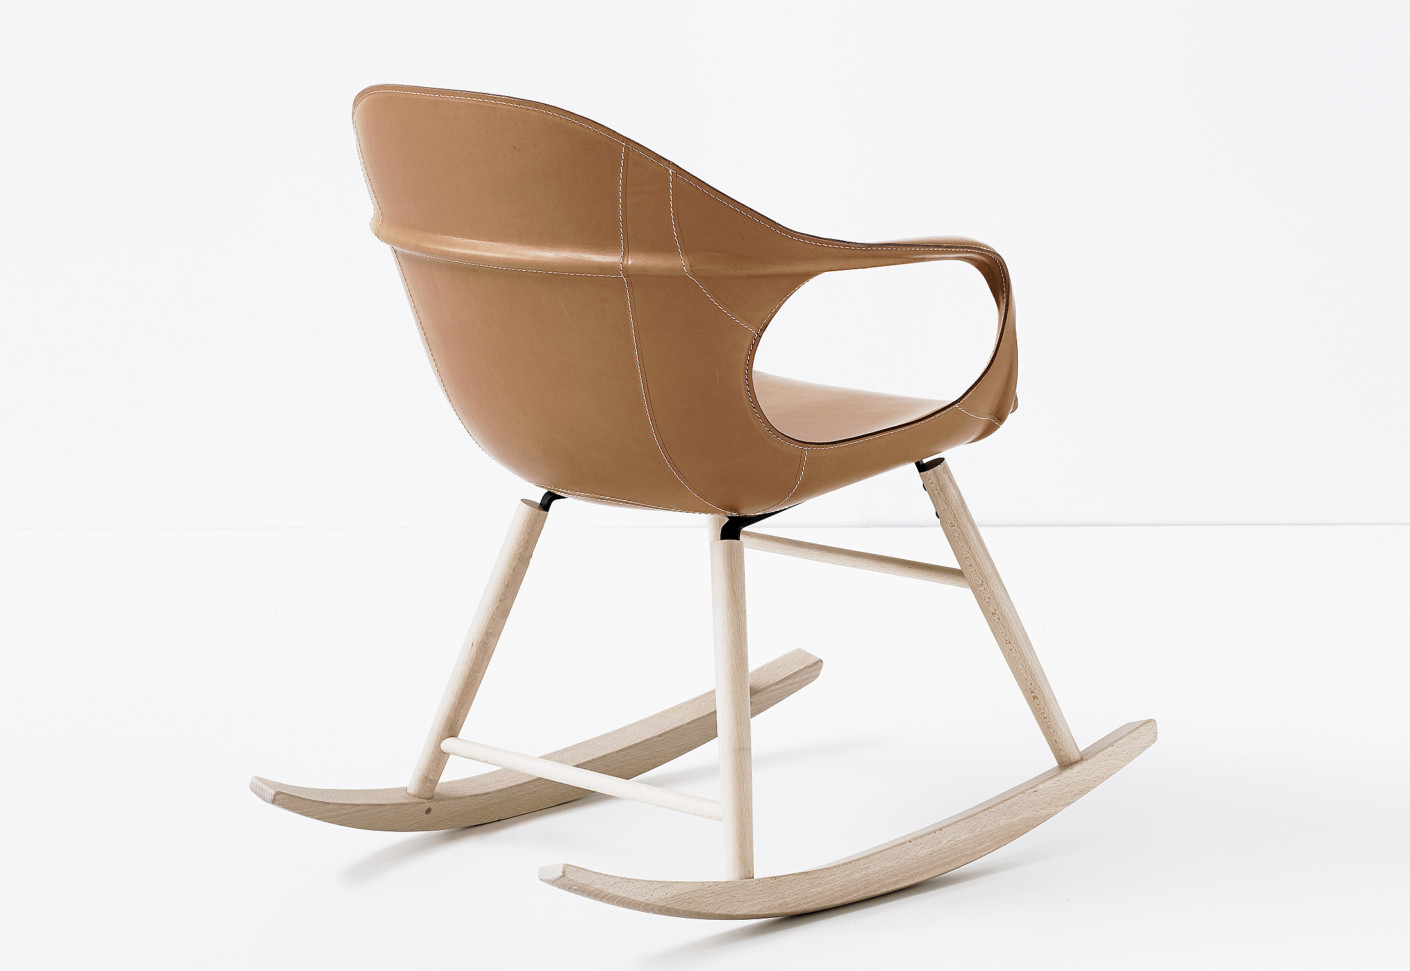 chair accessories manufacturers ergonomic with ottoman elephant leather rocking by kristalia stylepark